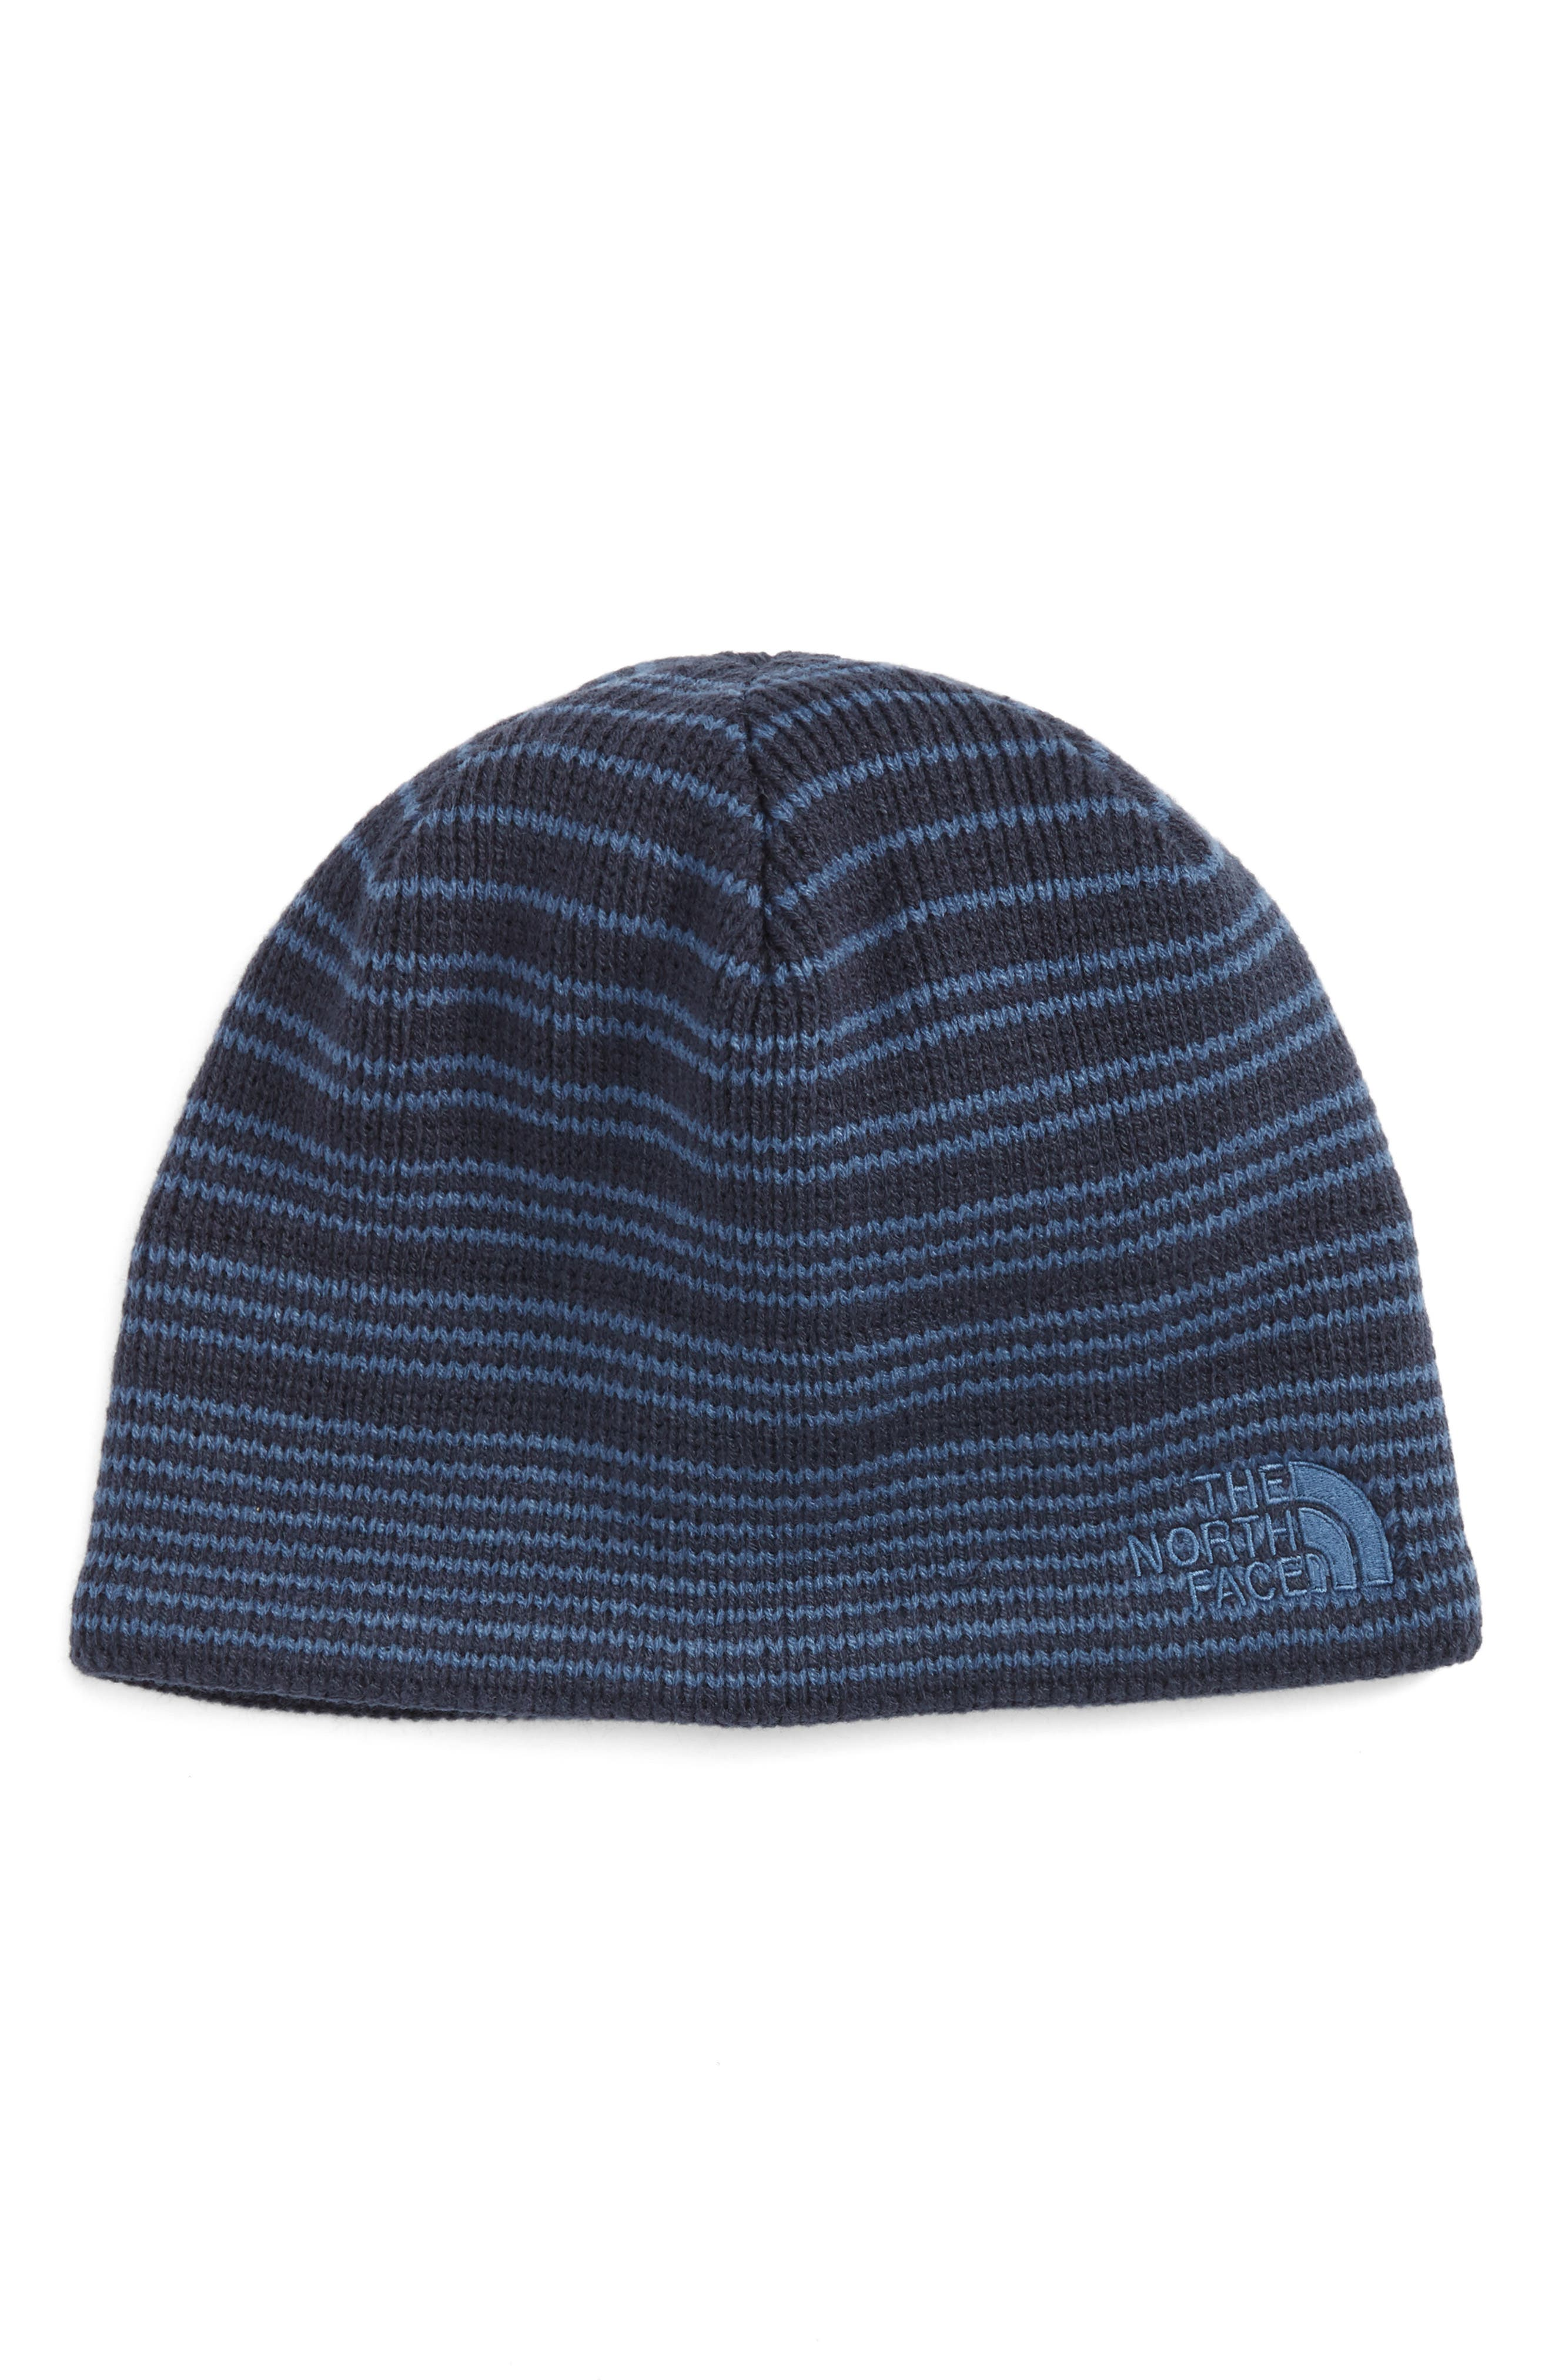 Main Image - The North Face 'Bones' Microfleece Beanie